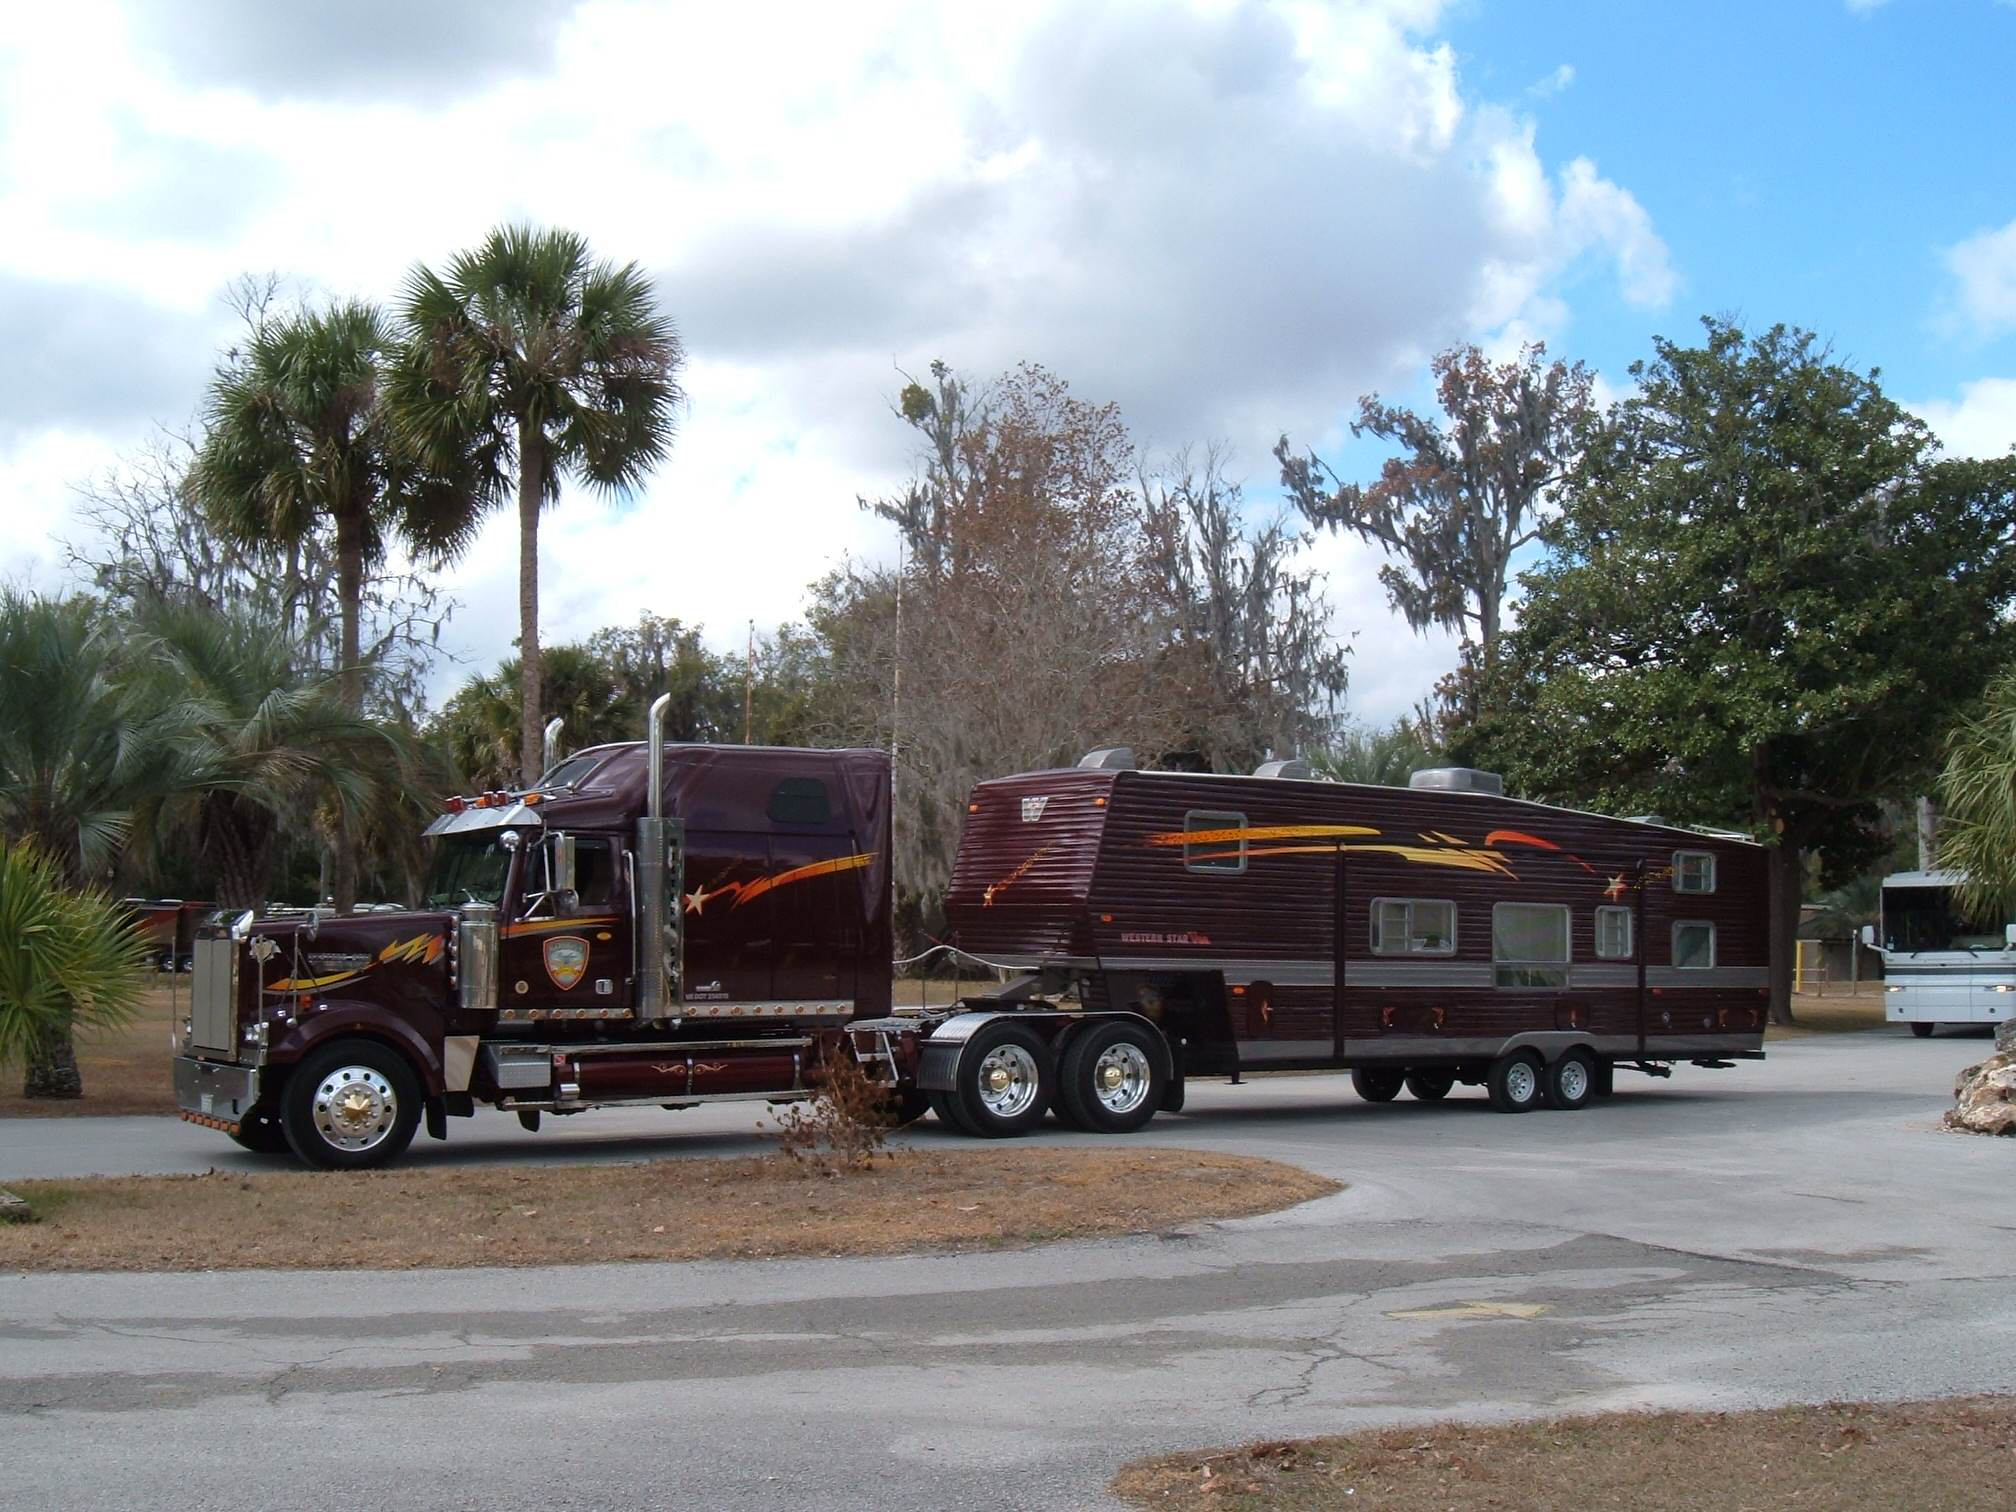 Pay and play: '03 Western Star works in the summer, tours in the winter